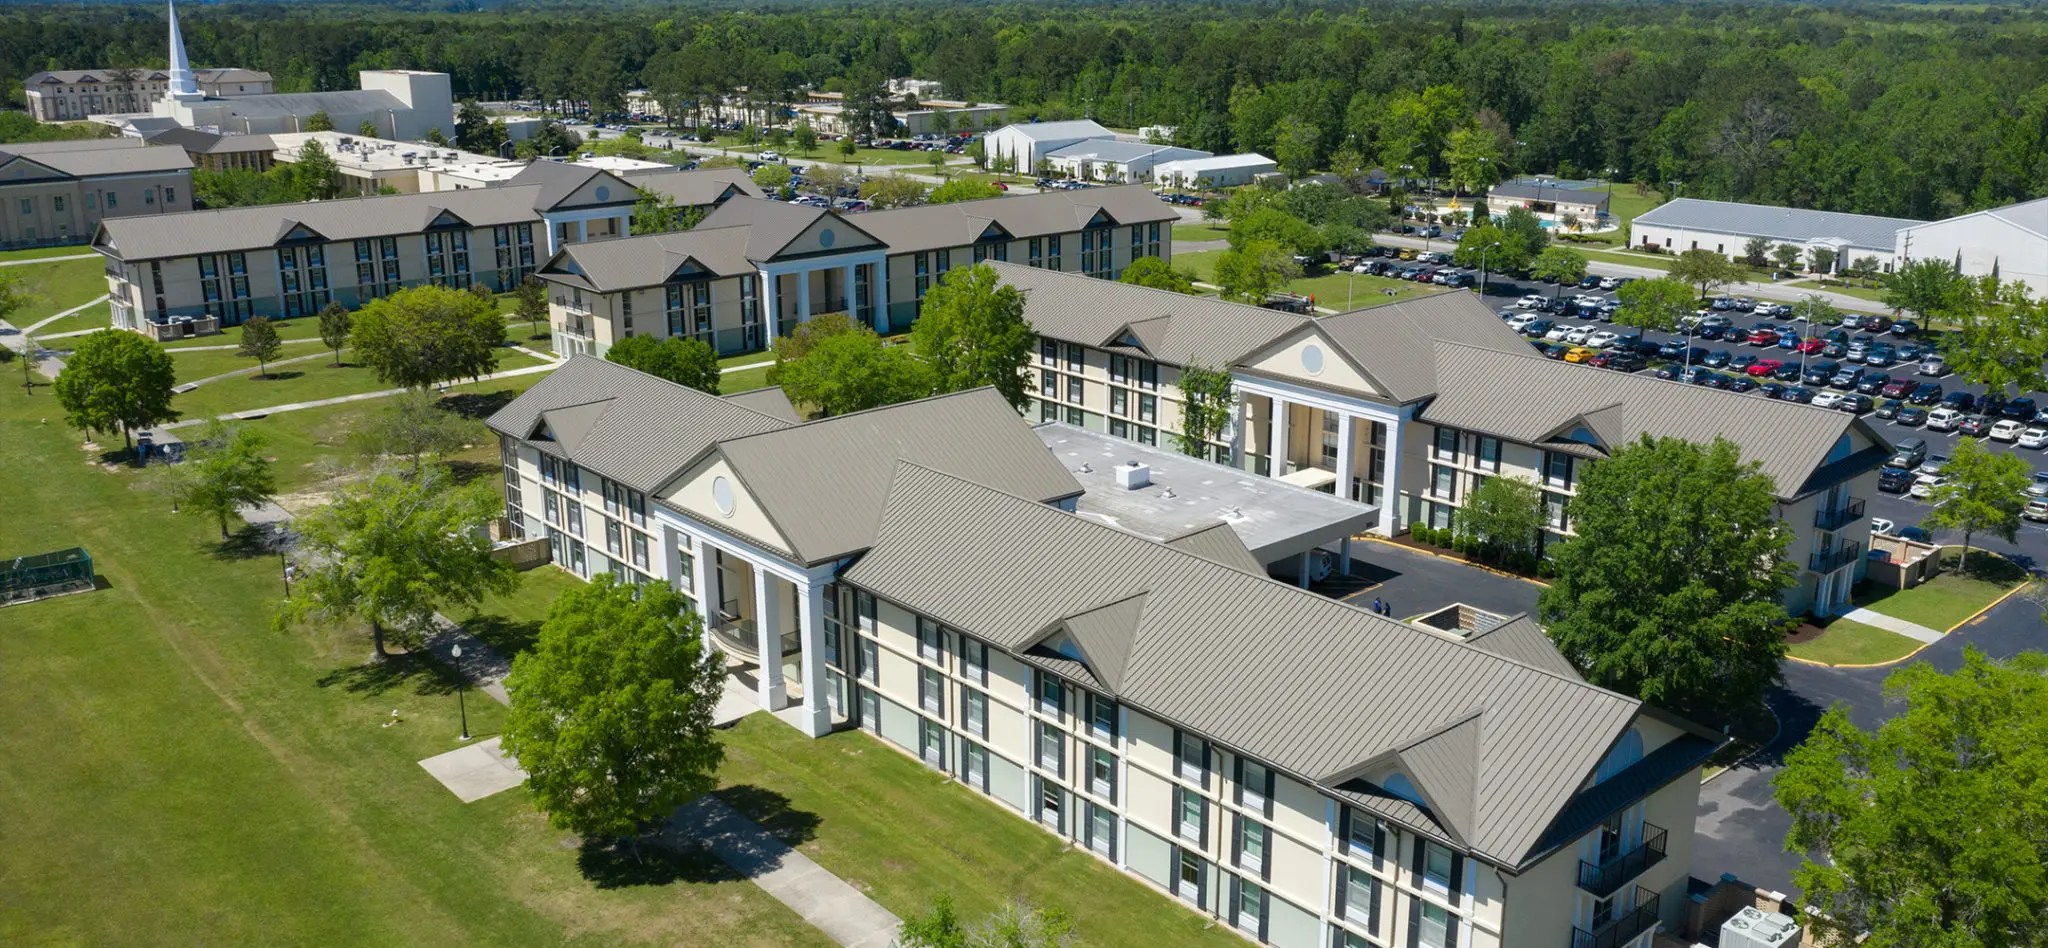 A drone photo of the Russel resident hall buildings.